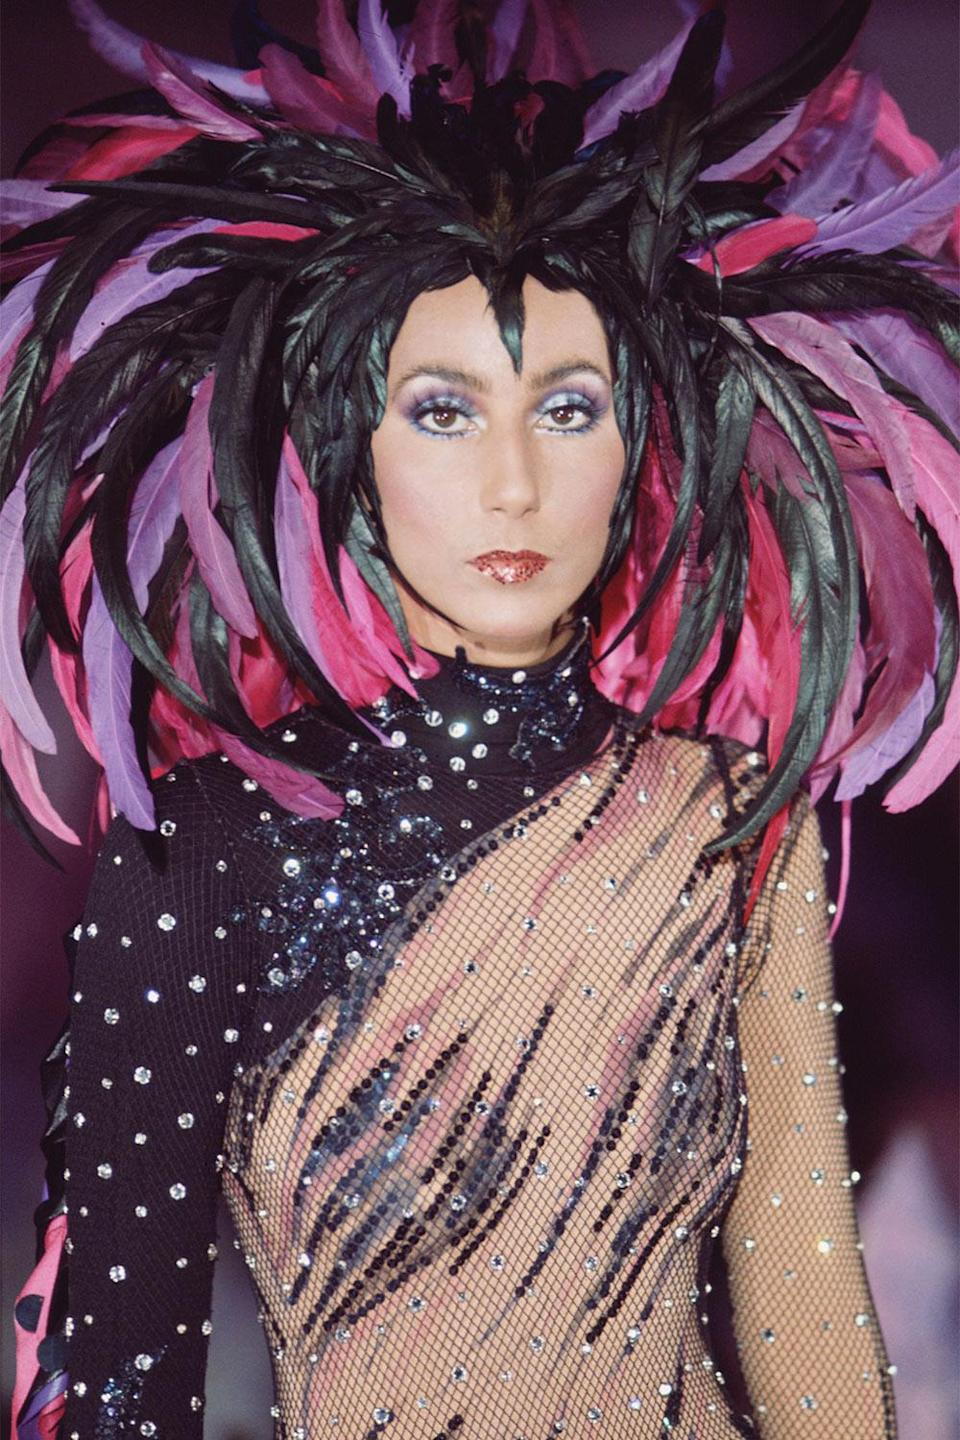 <p>Cher didn't shy away from dramatic looks while filming<em> The Sonny and Cher Comedy Hour </em>in 1972. </p>